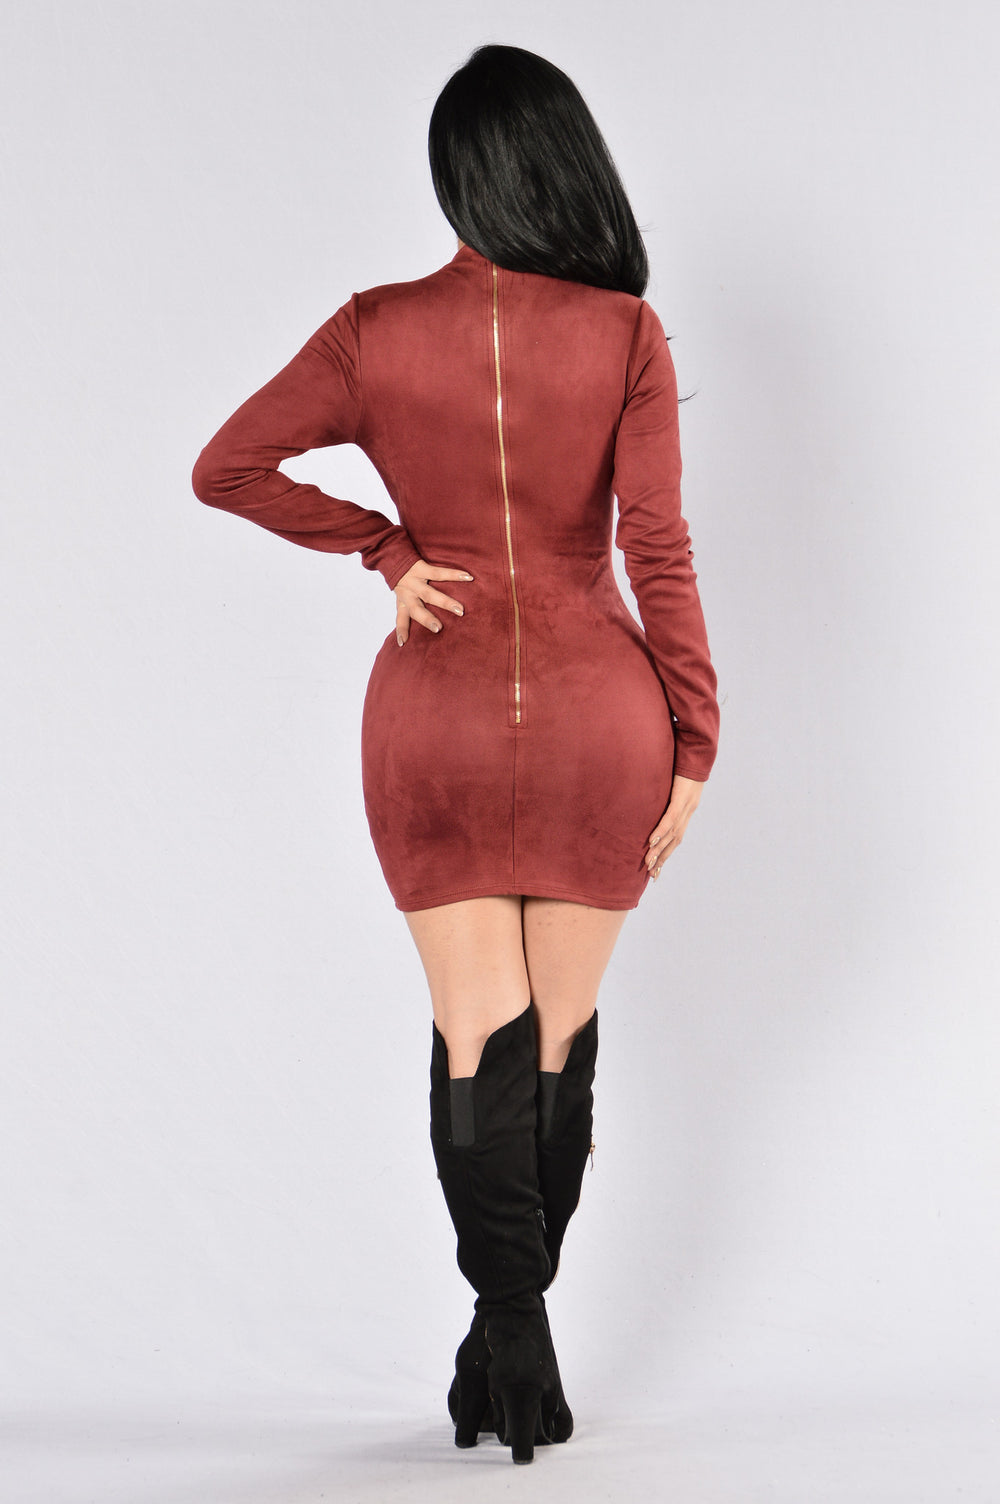 Feeling Amazing Dress - Dark Wine